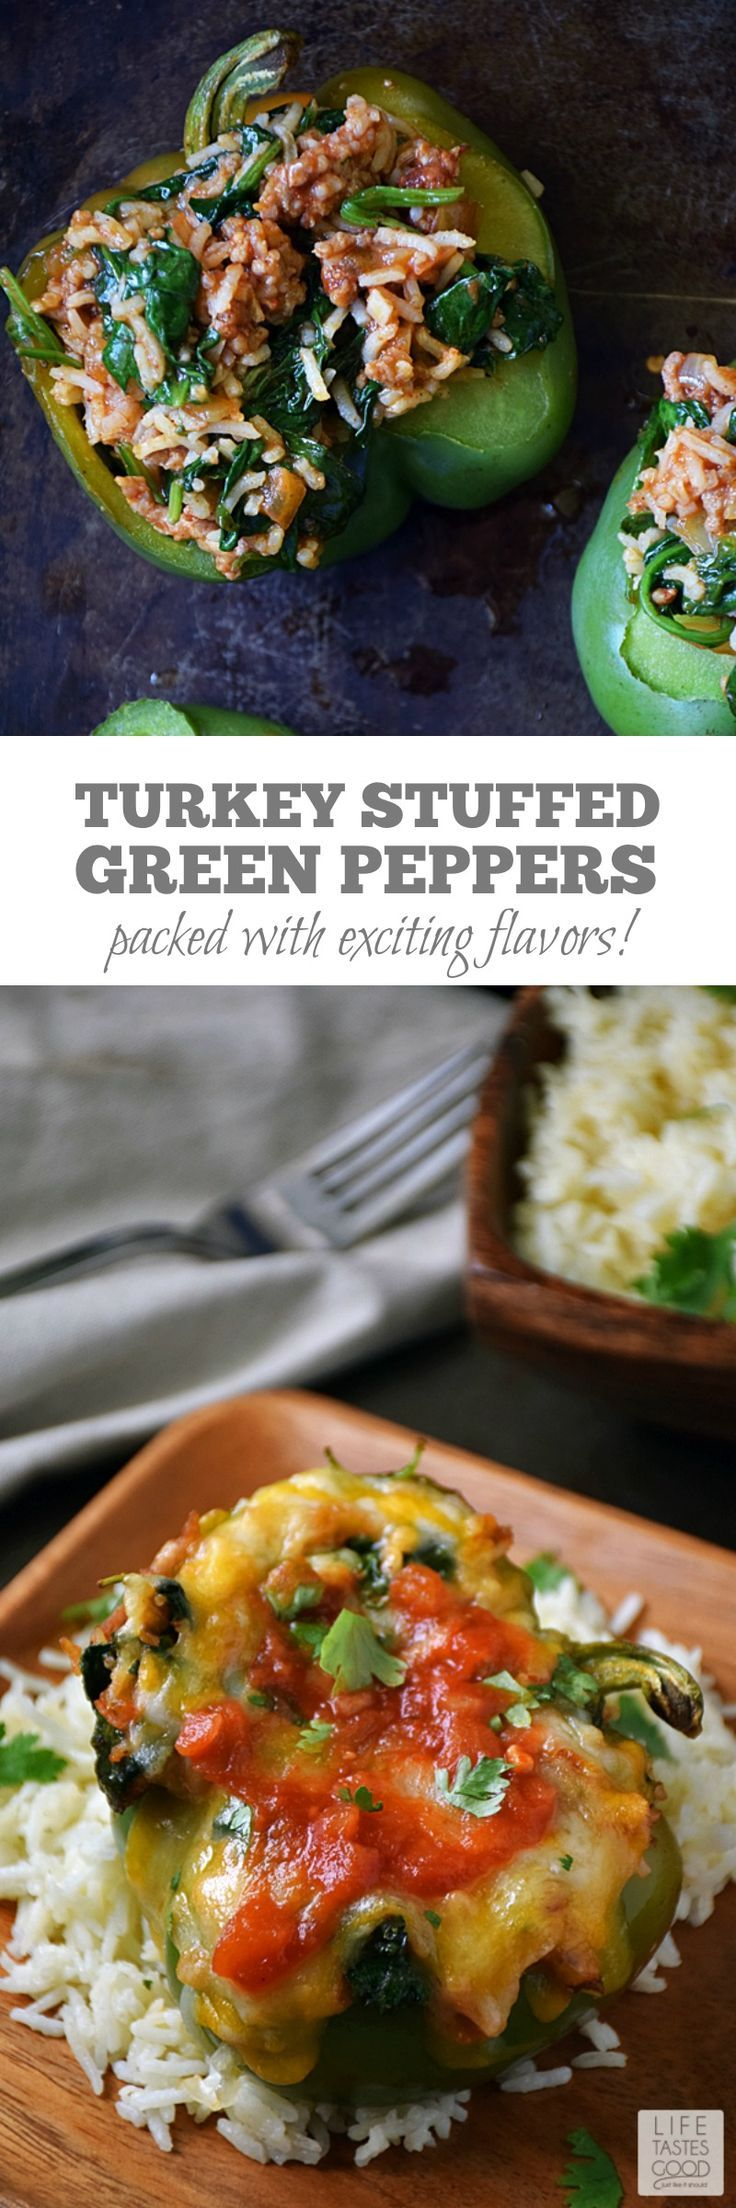 Green Peppers | by Life Tastes Good are stuffed with a mixture of turkey sausage, spinach, fresh herbs & Basmati rice in a spicy salsa topped off with ooey gooey cheese are easy to make and packed full of exciting flavors. #stuffedpeppers #cheeserecipe #HolidayRiceRecipes